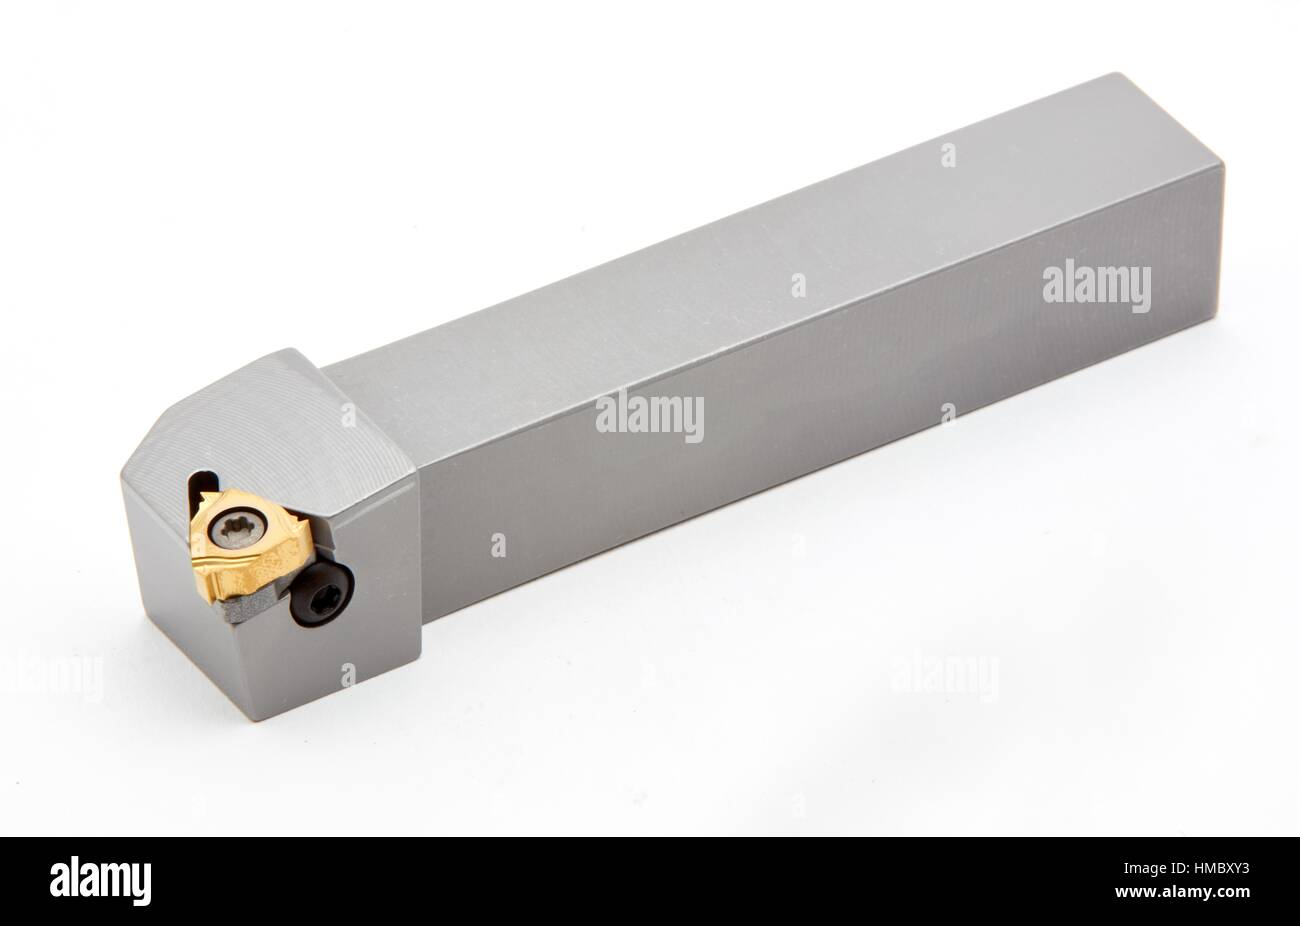 Cutting tool, Milling cutter - Stock Image